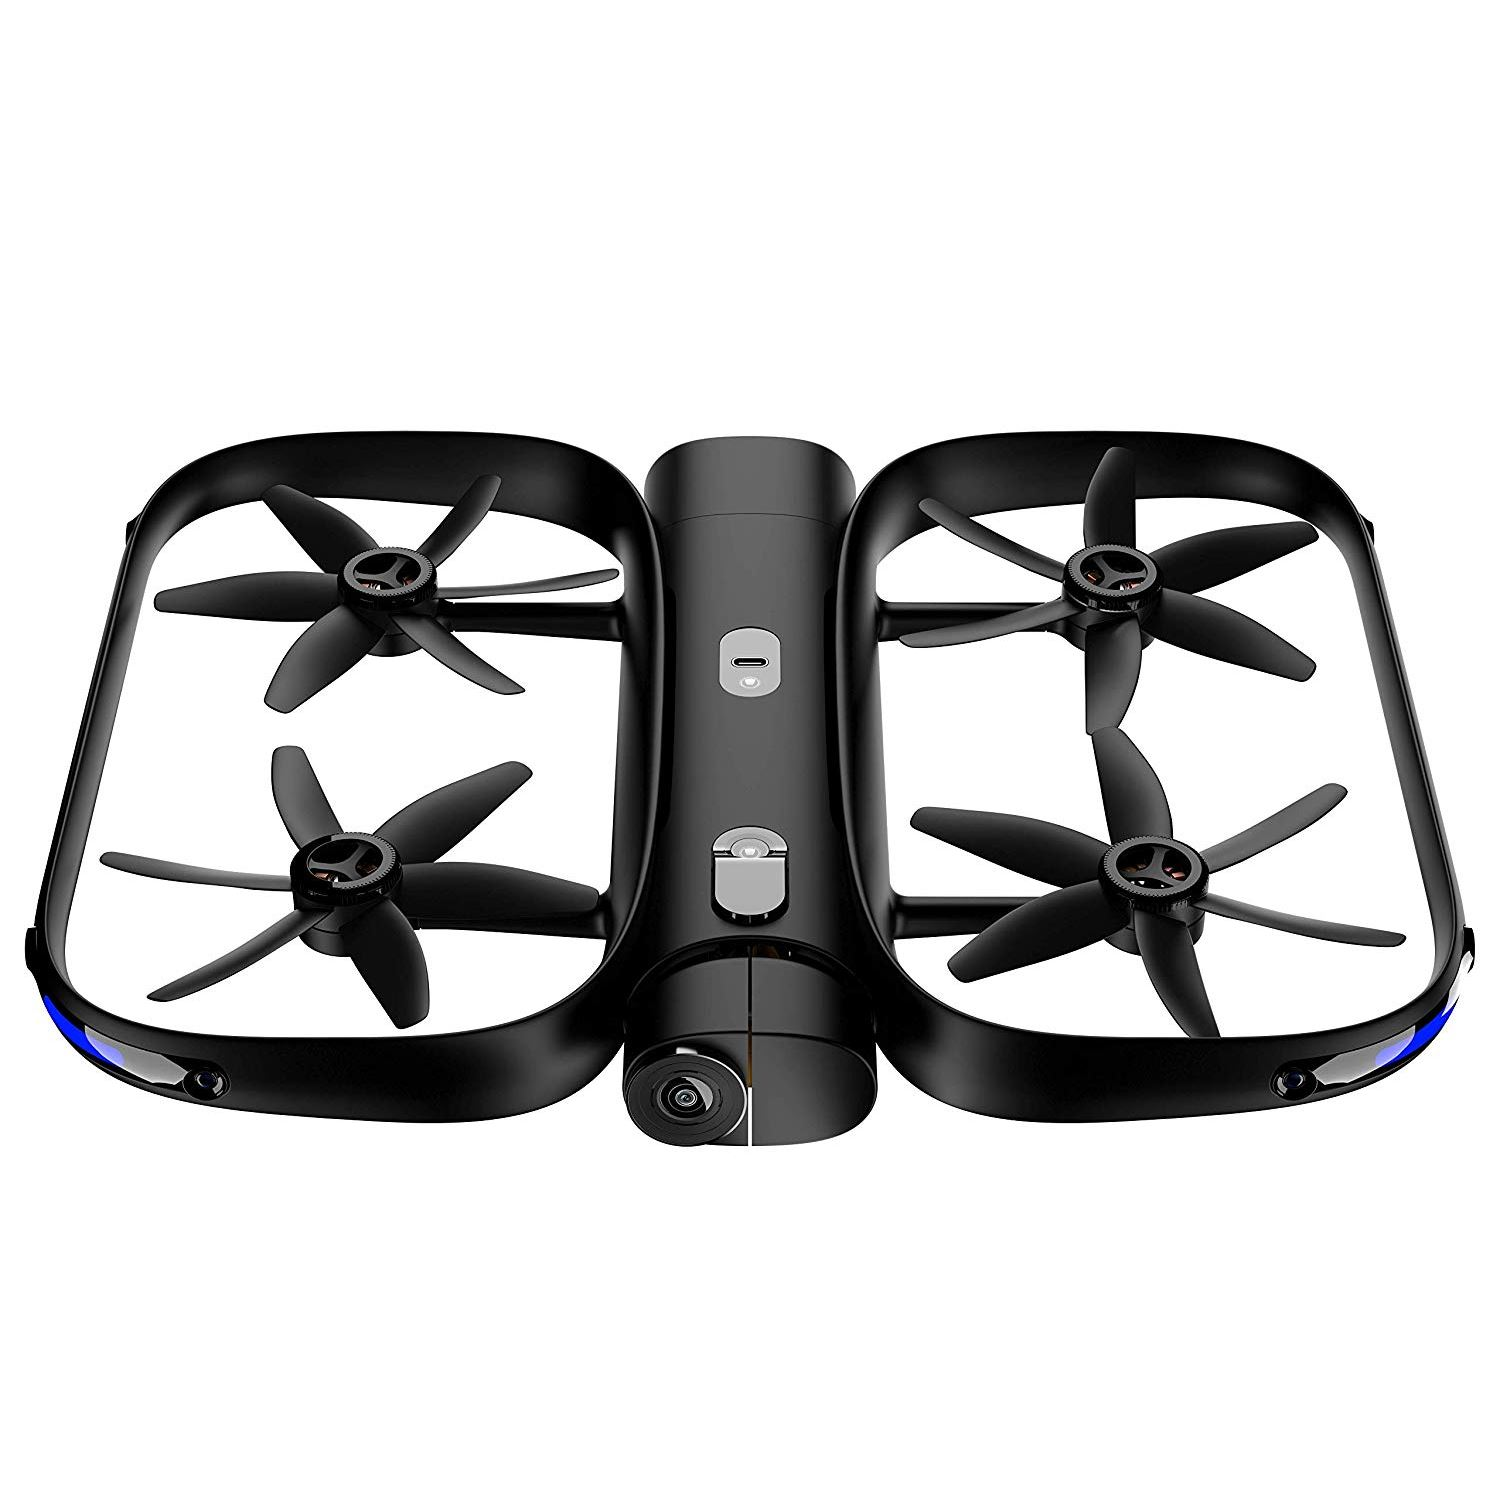 Skydio R1 Review